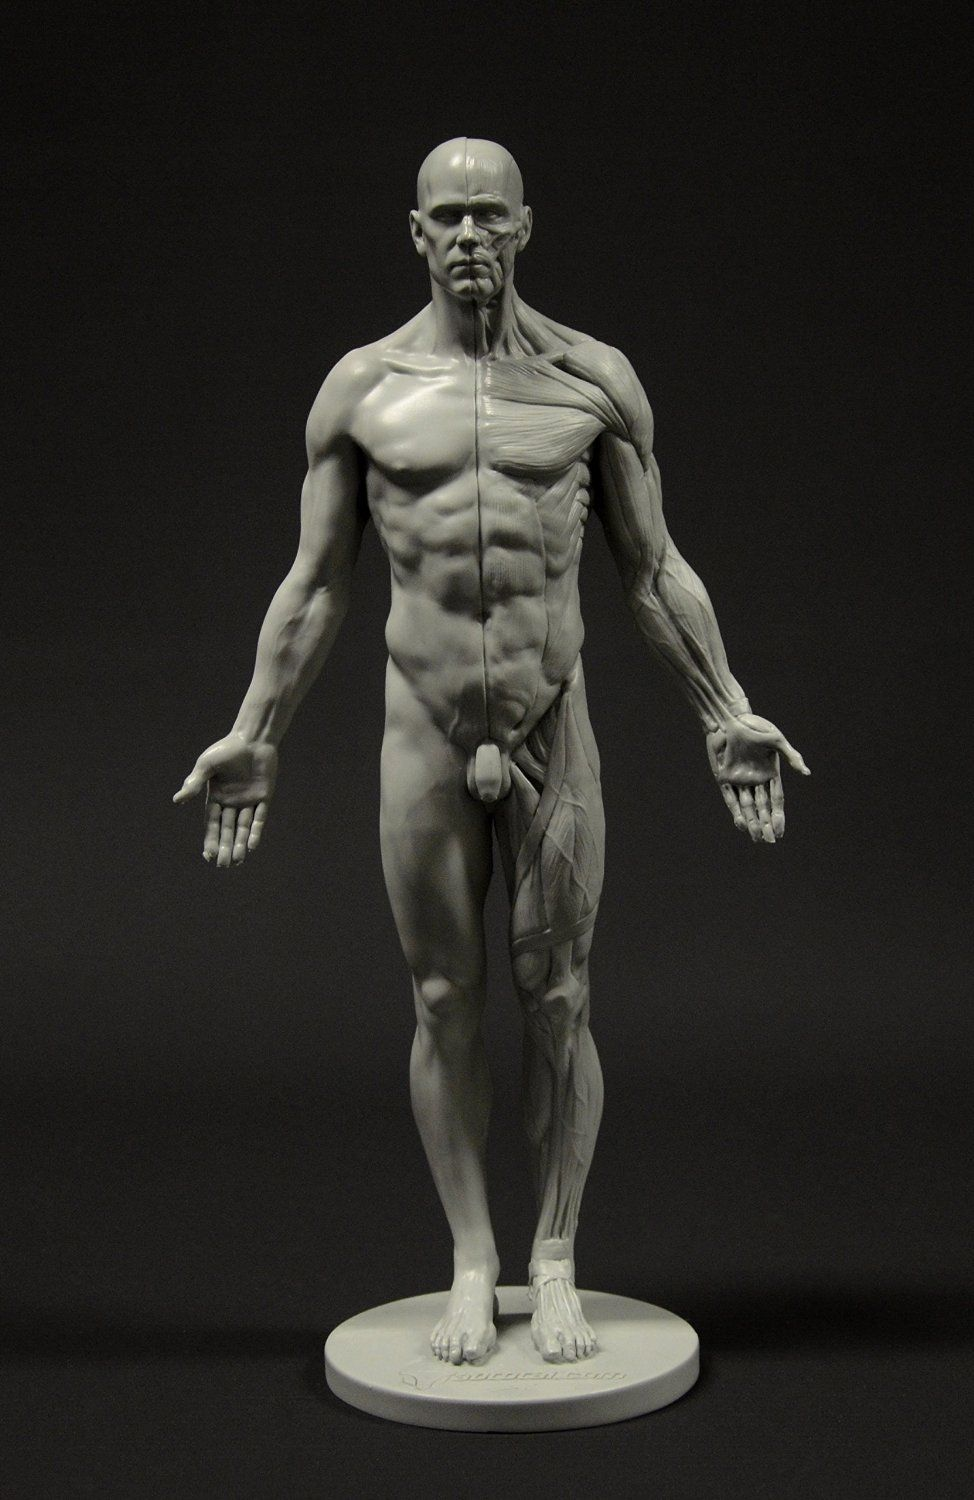 Amazon | Male Anatomy Figure: 11-inch Anatomical Reference for Artists (Grey) 男性解剖図 | 文房具・オフィス用品